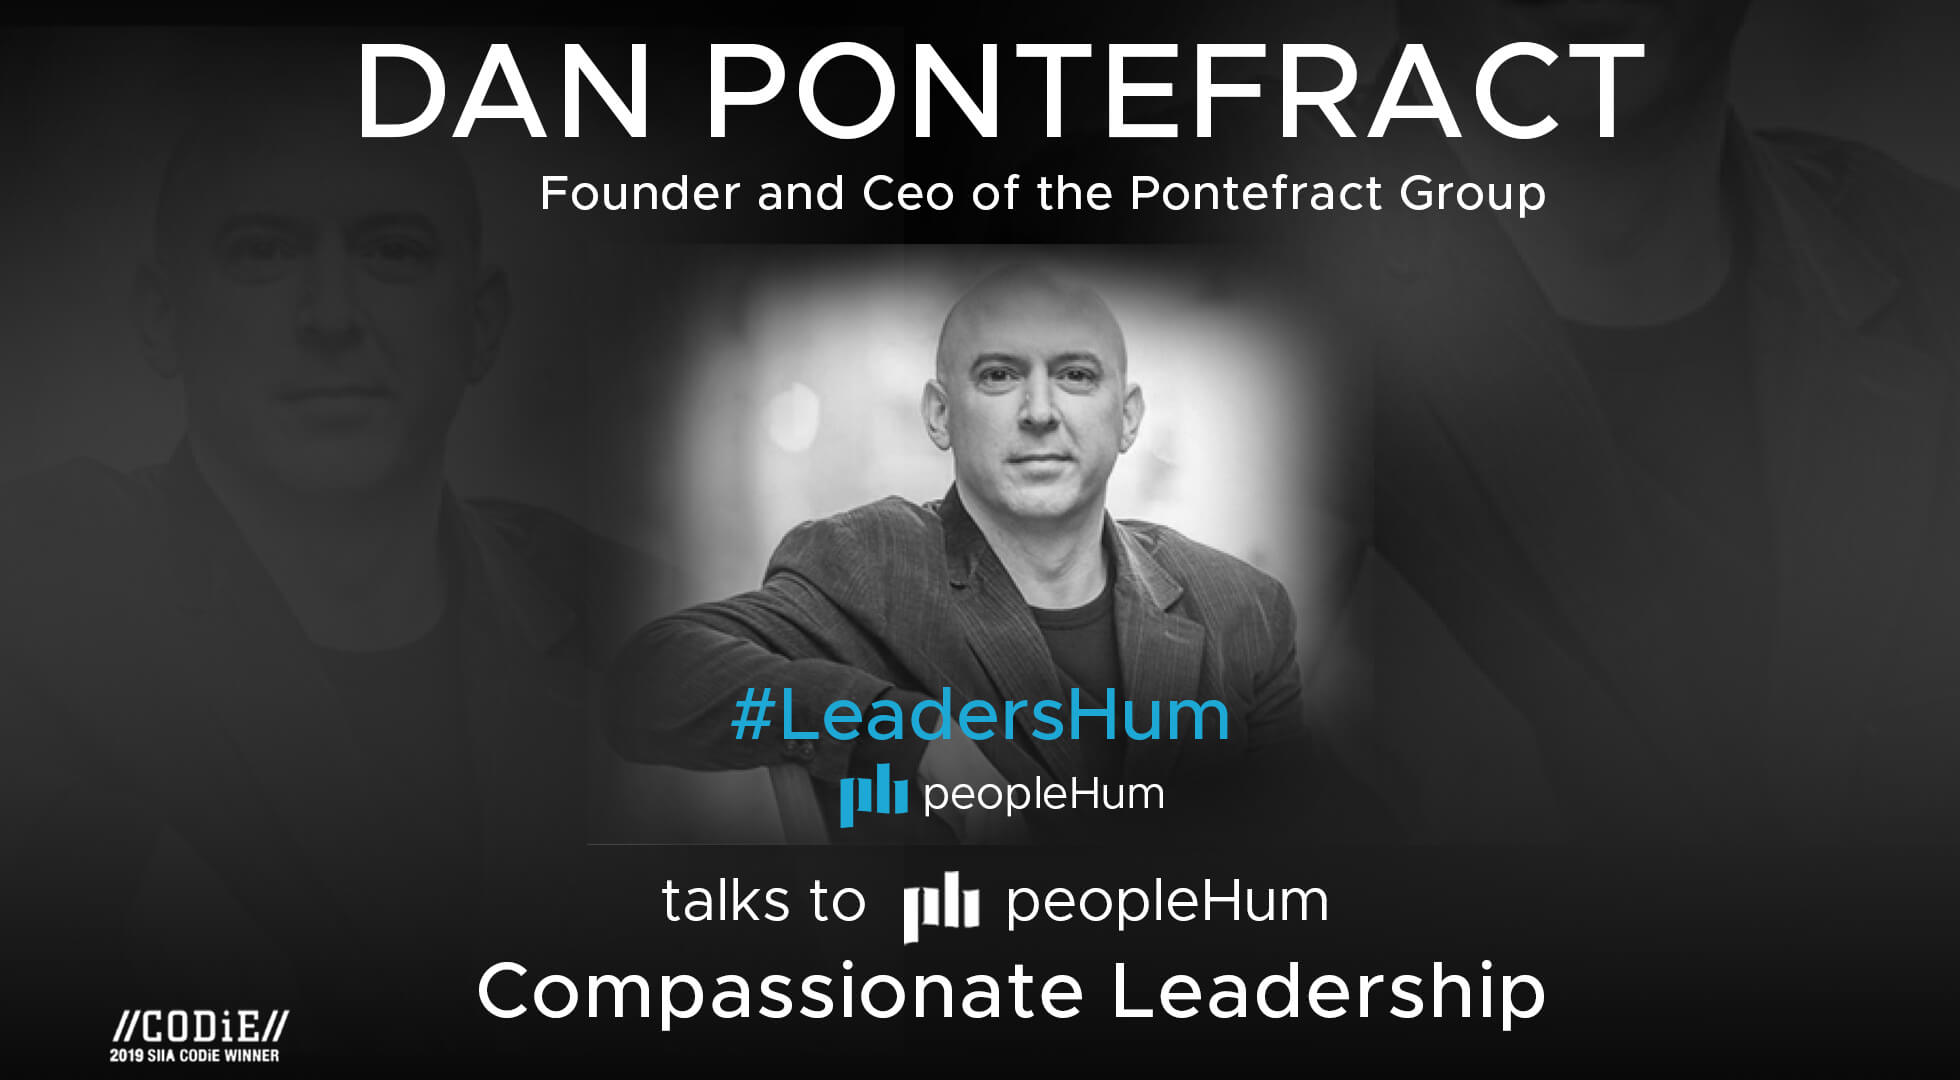 Blend of compassion in leadership - Dan Pontefract [Interview]